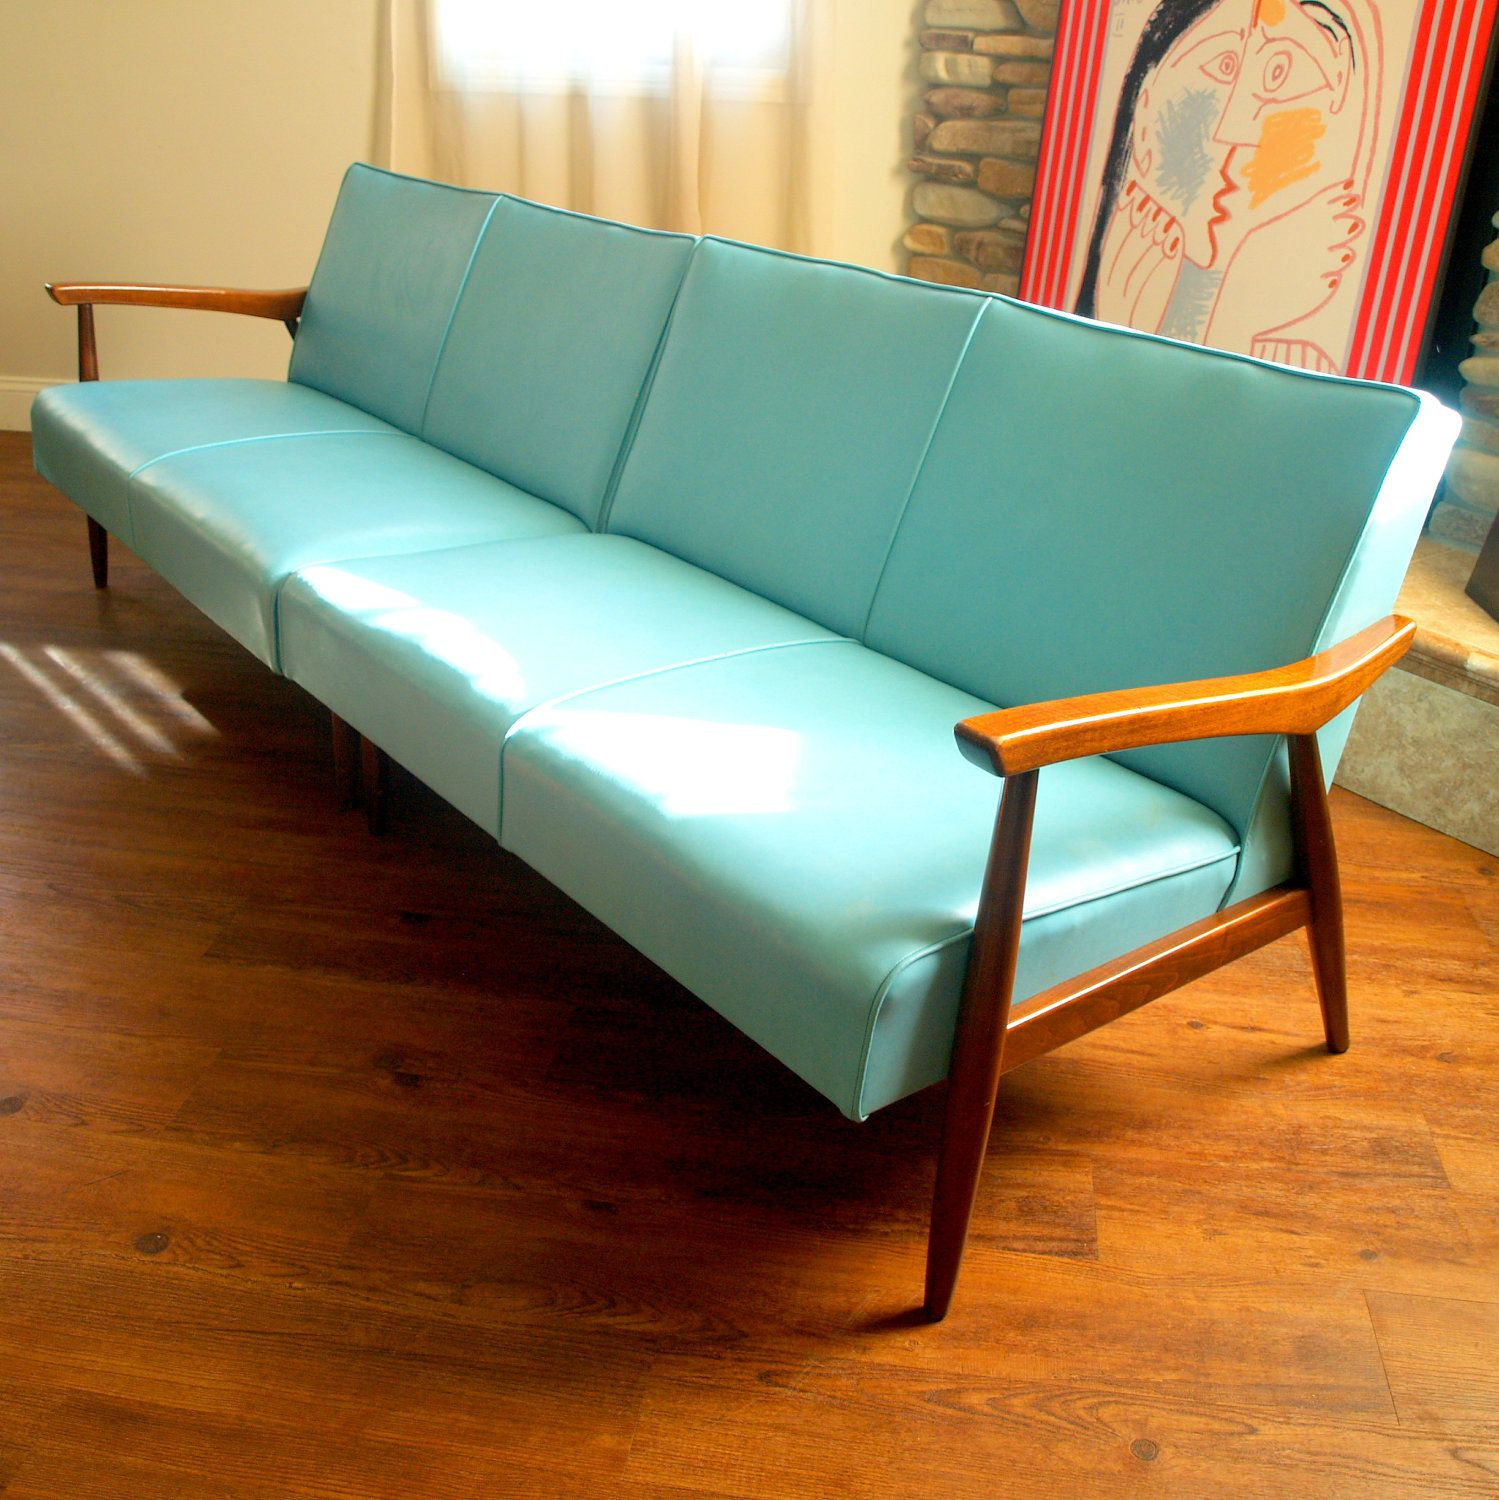 ^ 1000+ images about Fifties furniture on Pinterest rmchairs ...